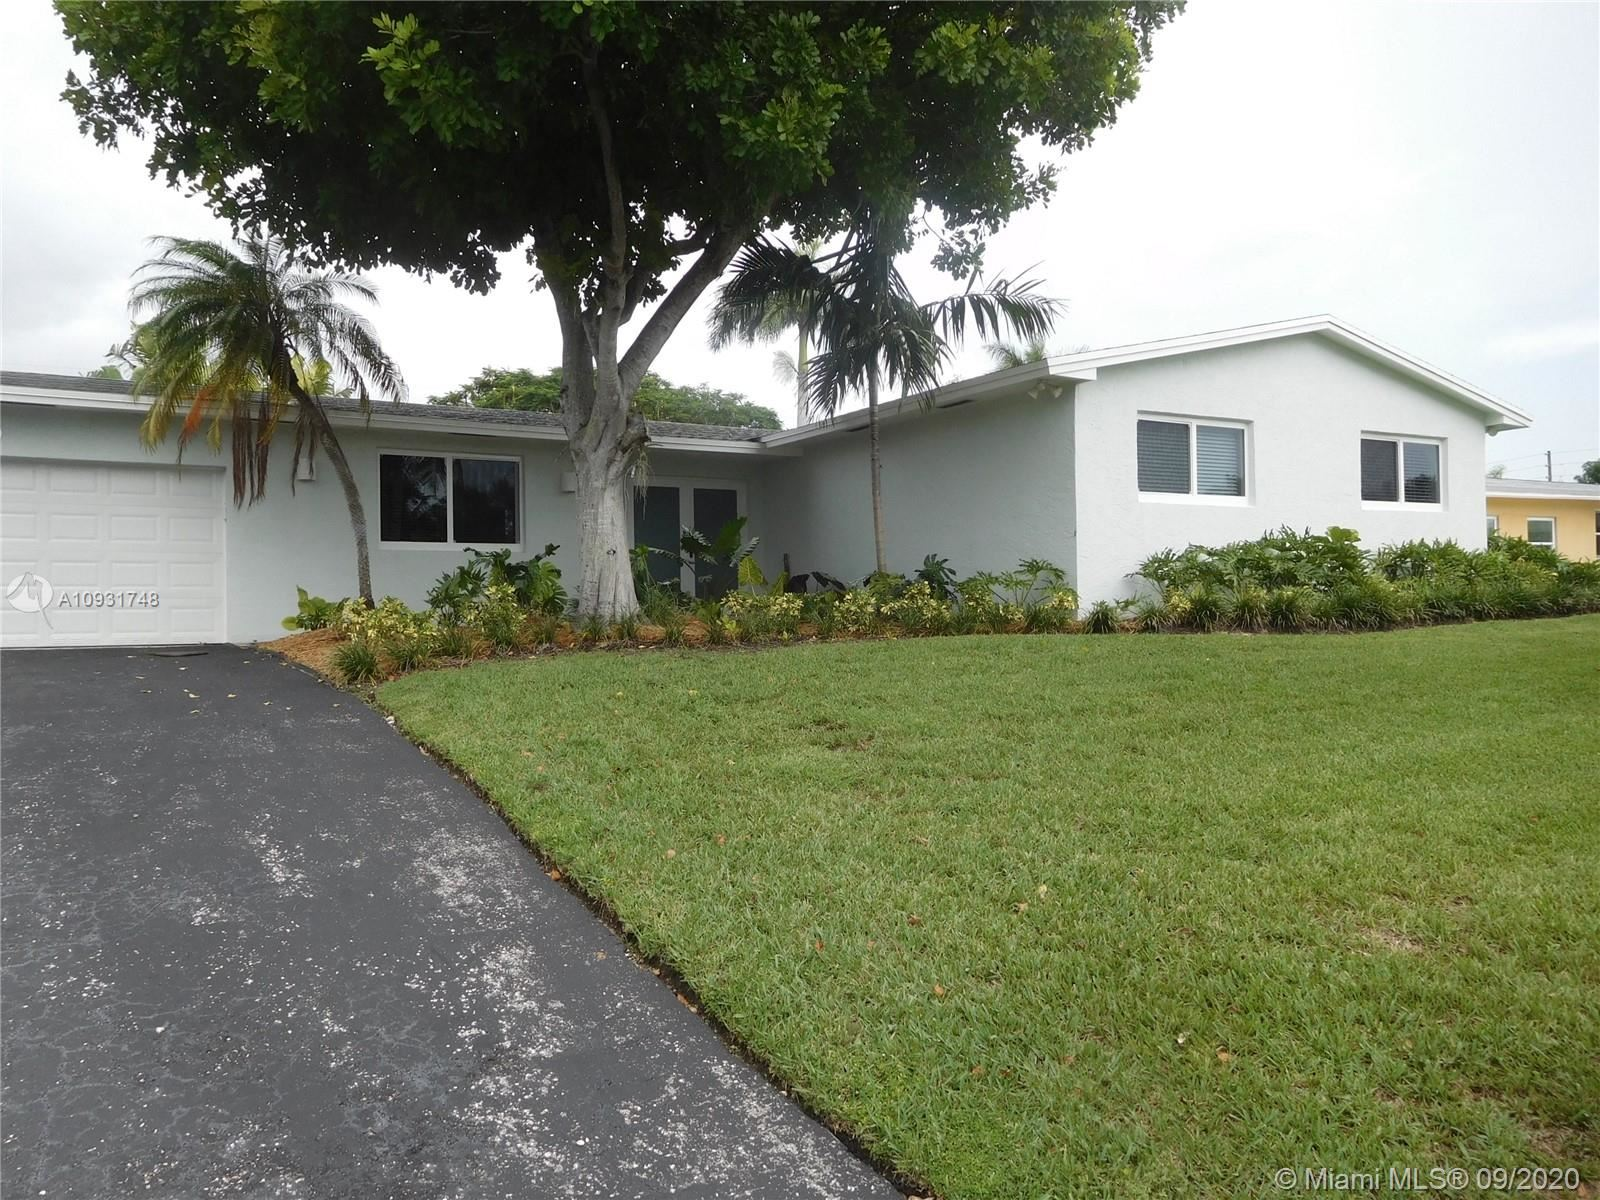 8721 SW 186th St, Cutler Bay, FL 33157 - #: A10931748